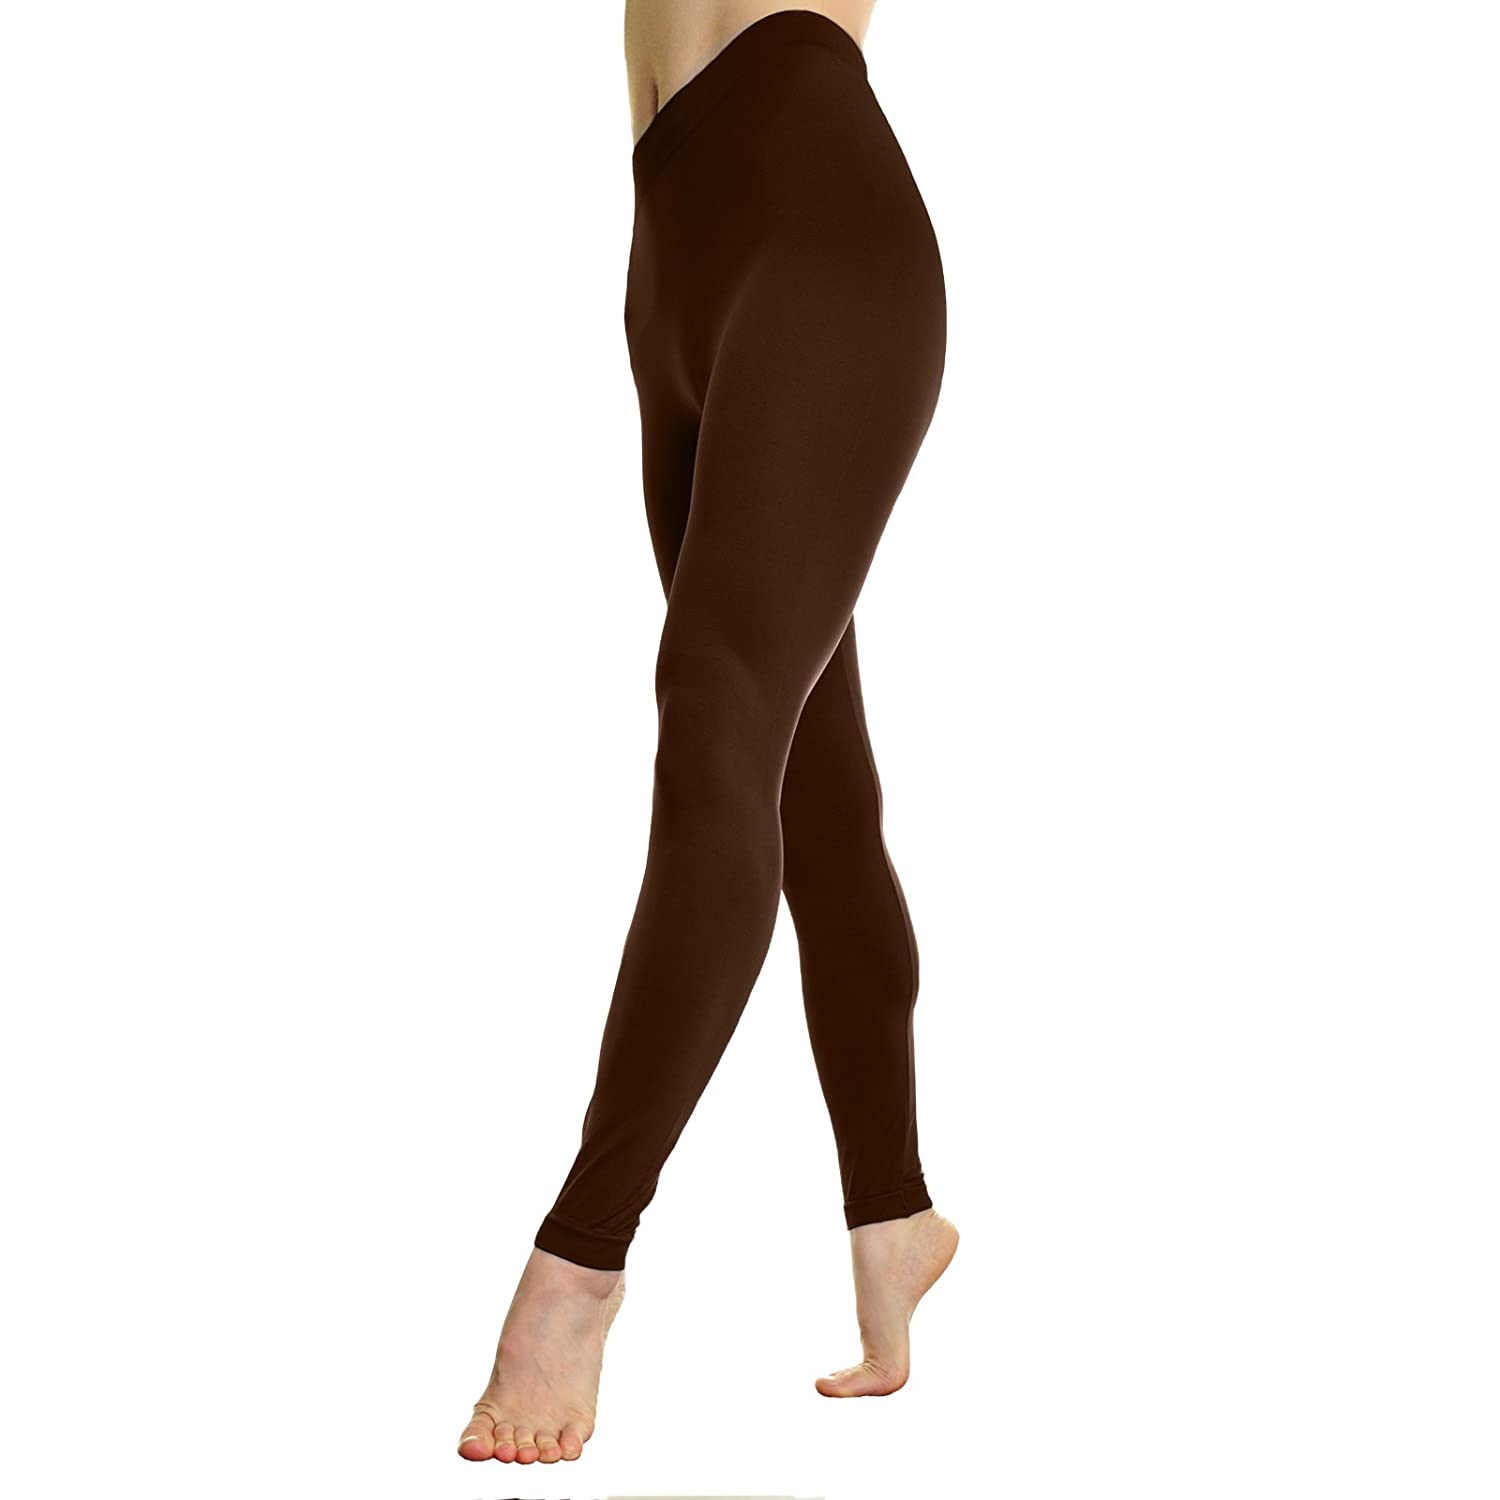 b9f2600eac9db Seamless microfiber leggings with great length/stretch. One size fits  beautifully on models up to US size 16. Queen size (XL - 2XL) fits up to  size 24 and ...